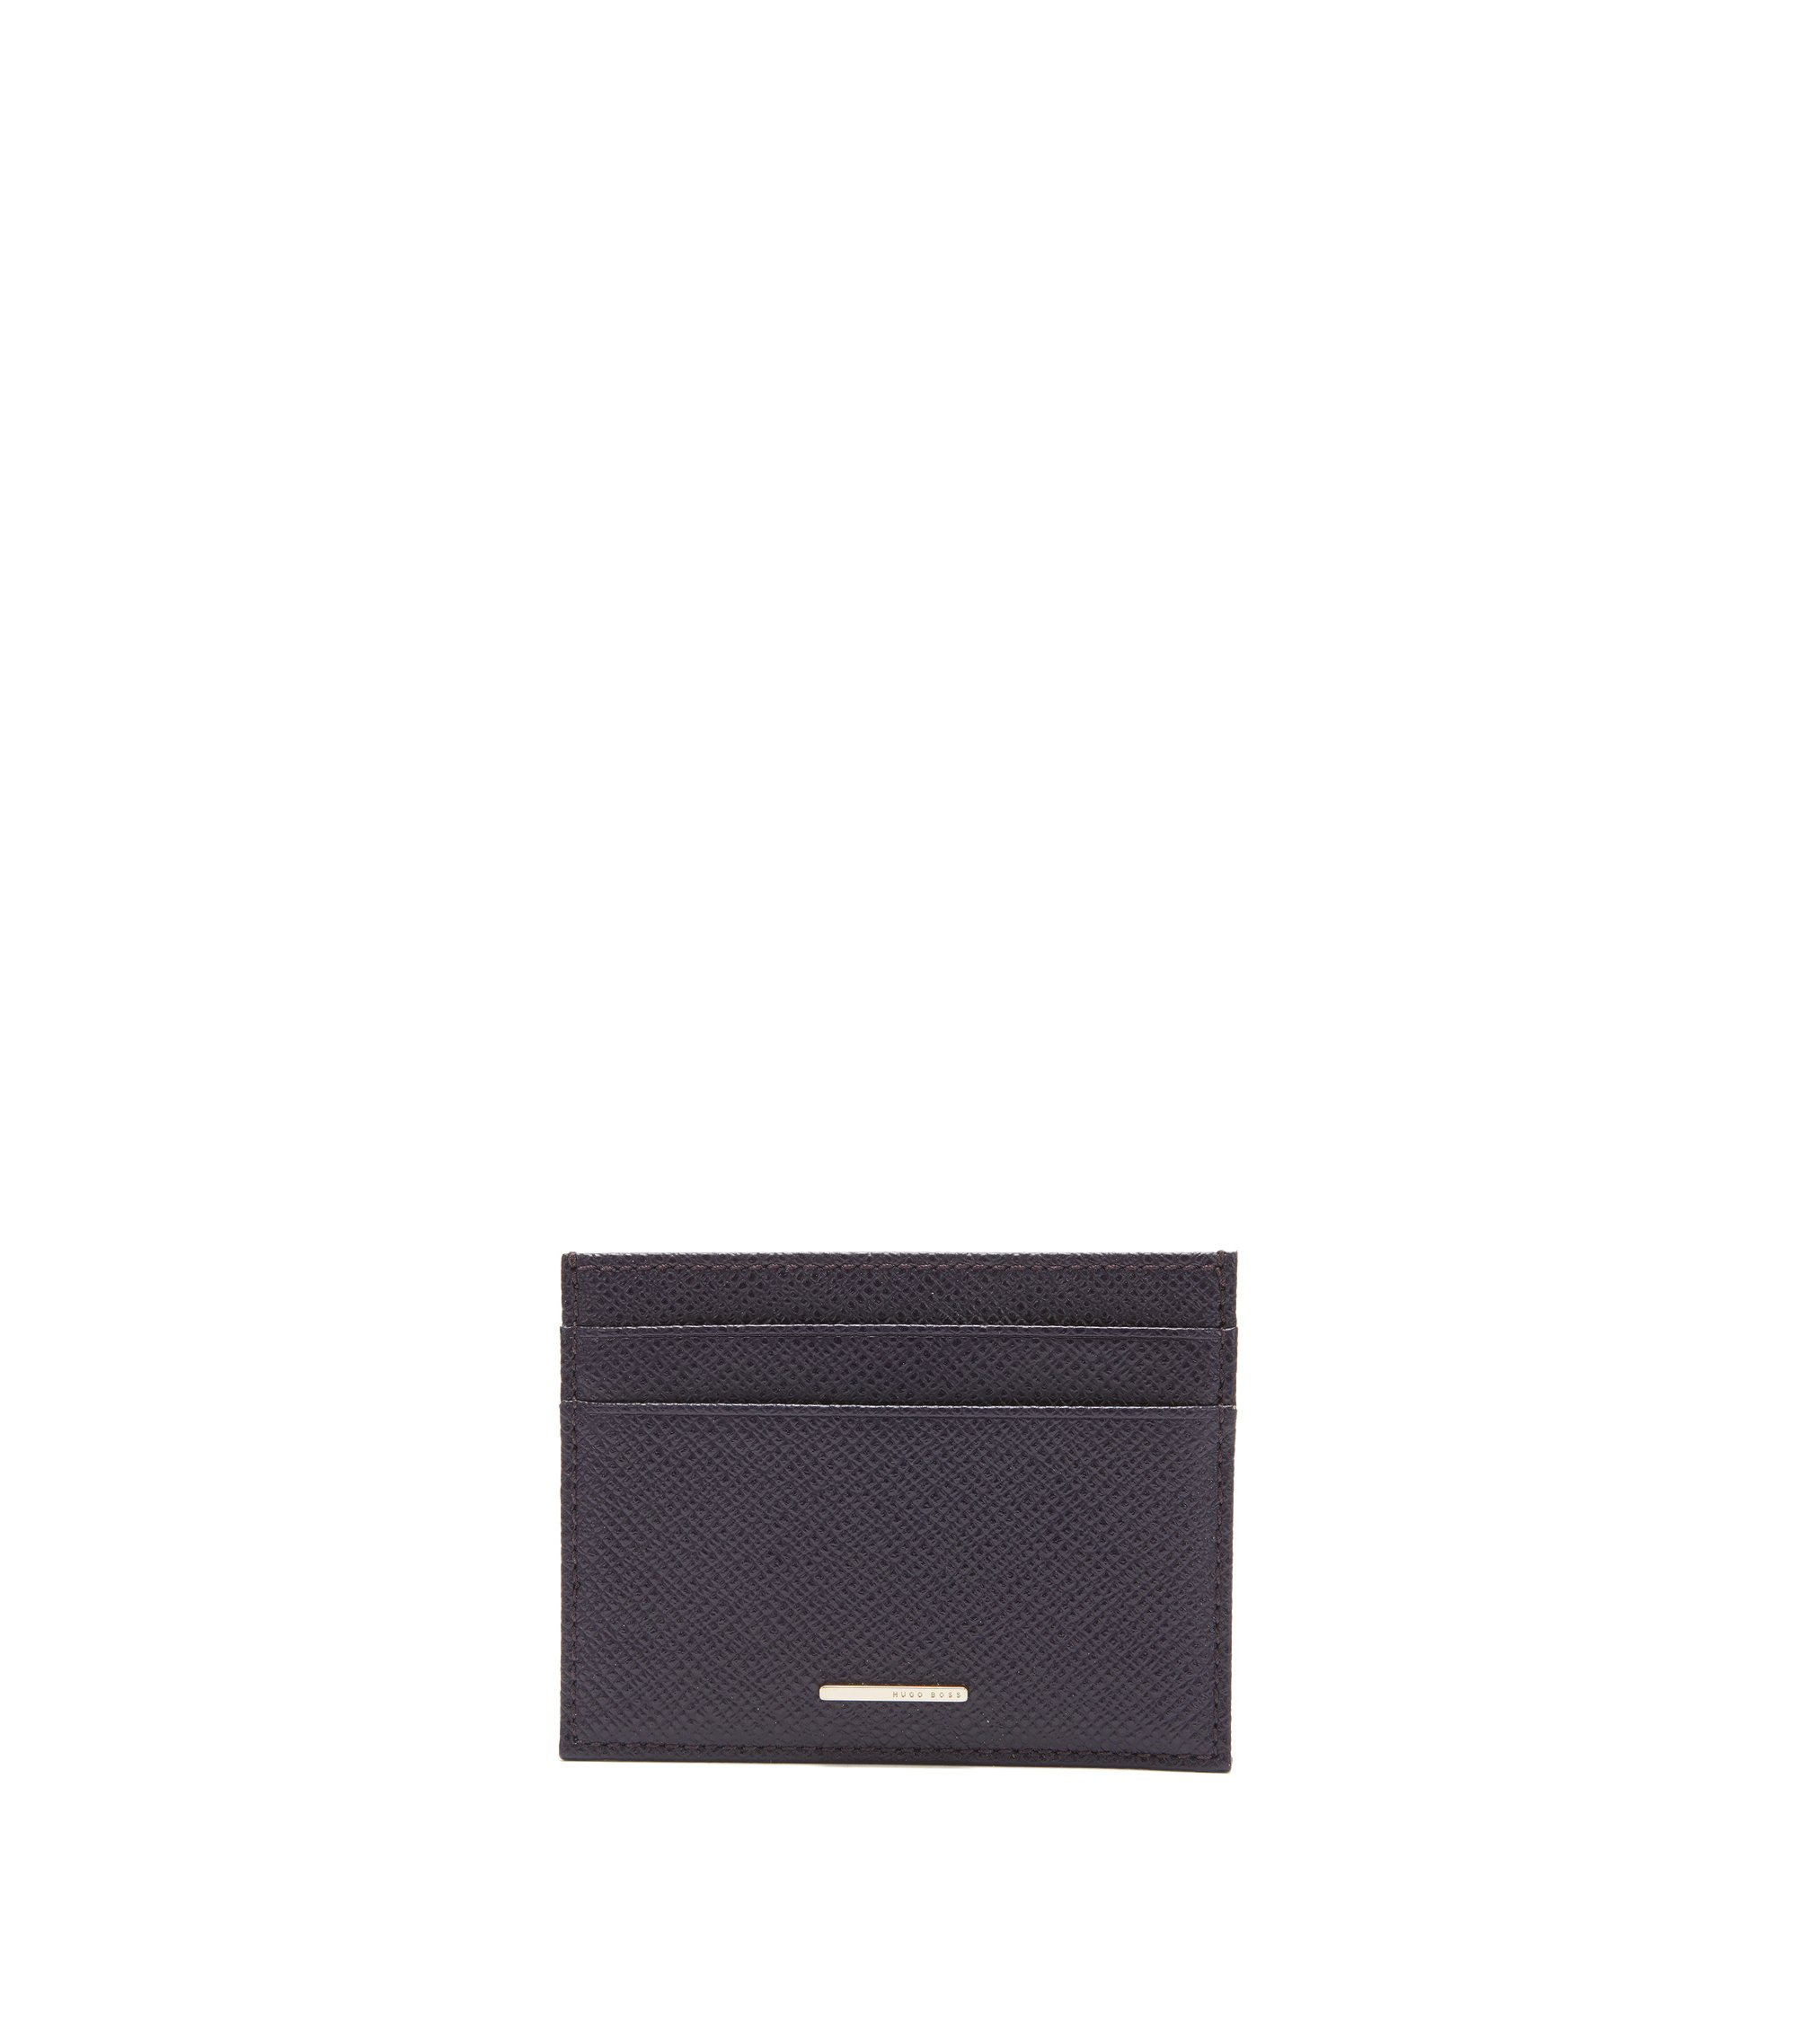 BOSS Luxury Staple card holder in leather, Dark Purple